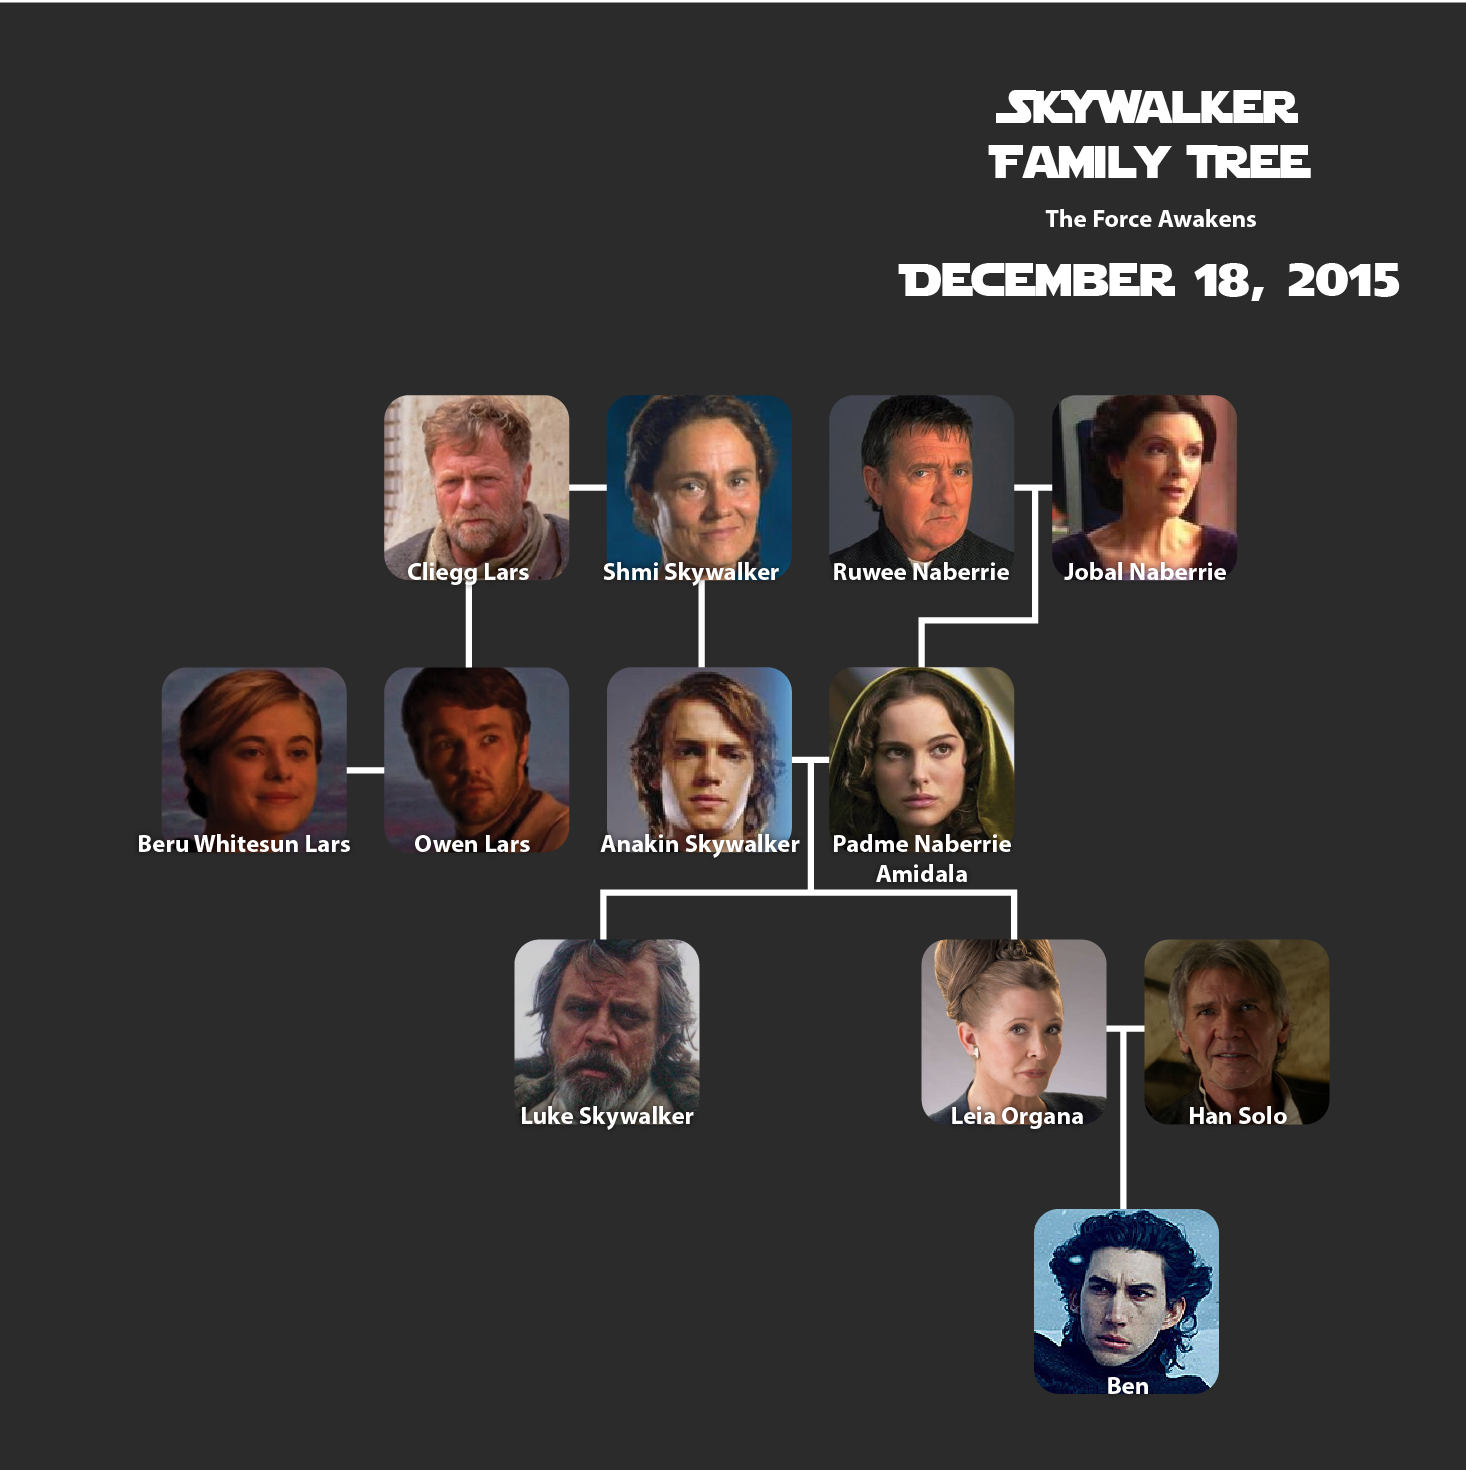 Star Wars Living Room Art: Updated Skywalker Family Tree (TFA)